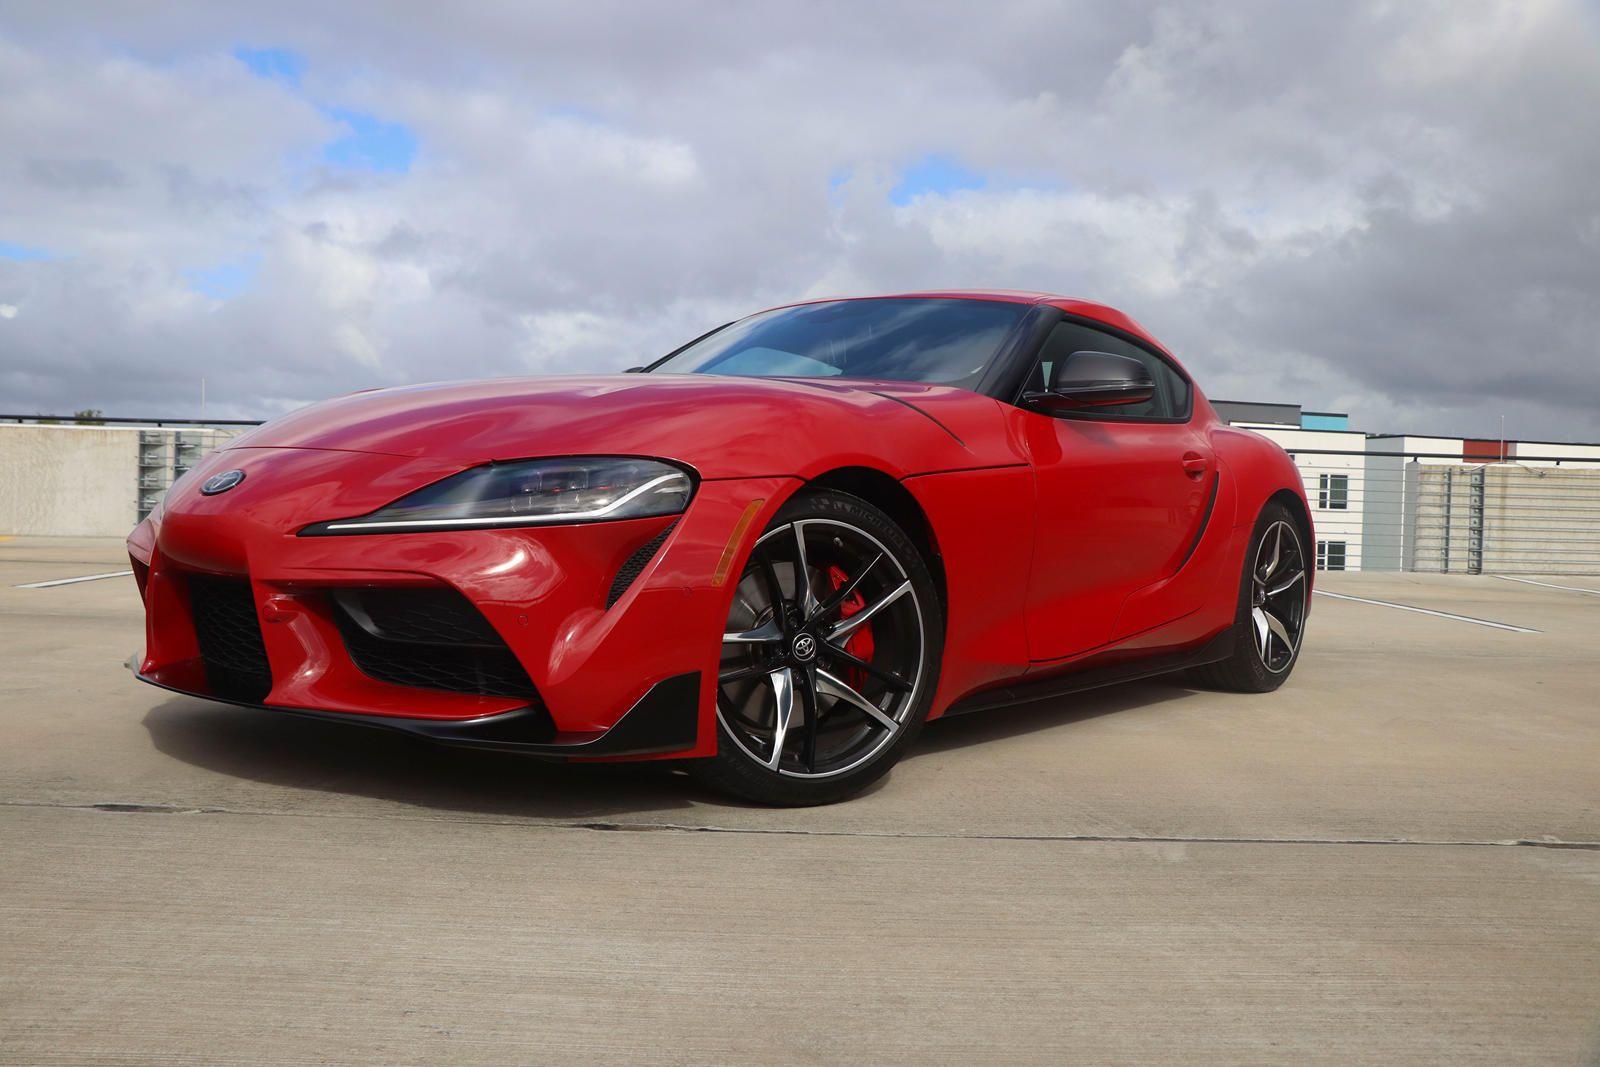 2020 Toyota Gr Supra Test Drive Review A Tuner S Dream In 2020 Toyota Supra Toyota Supra